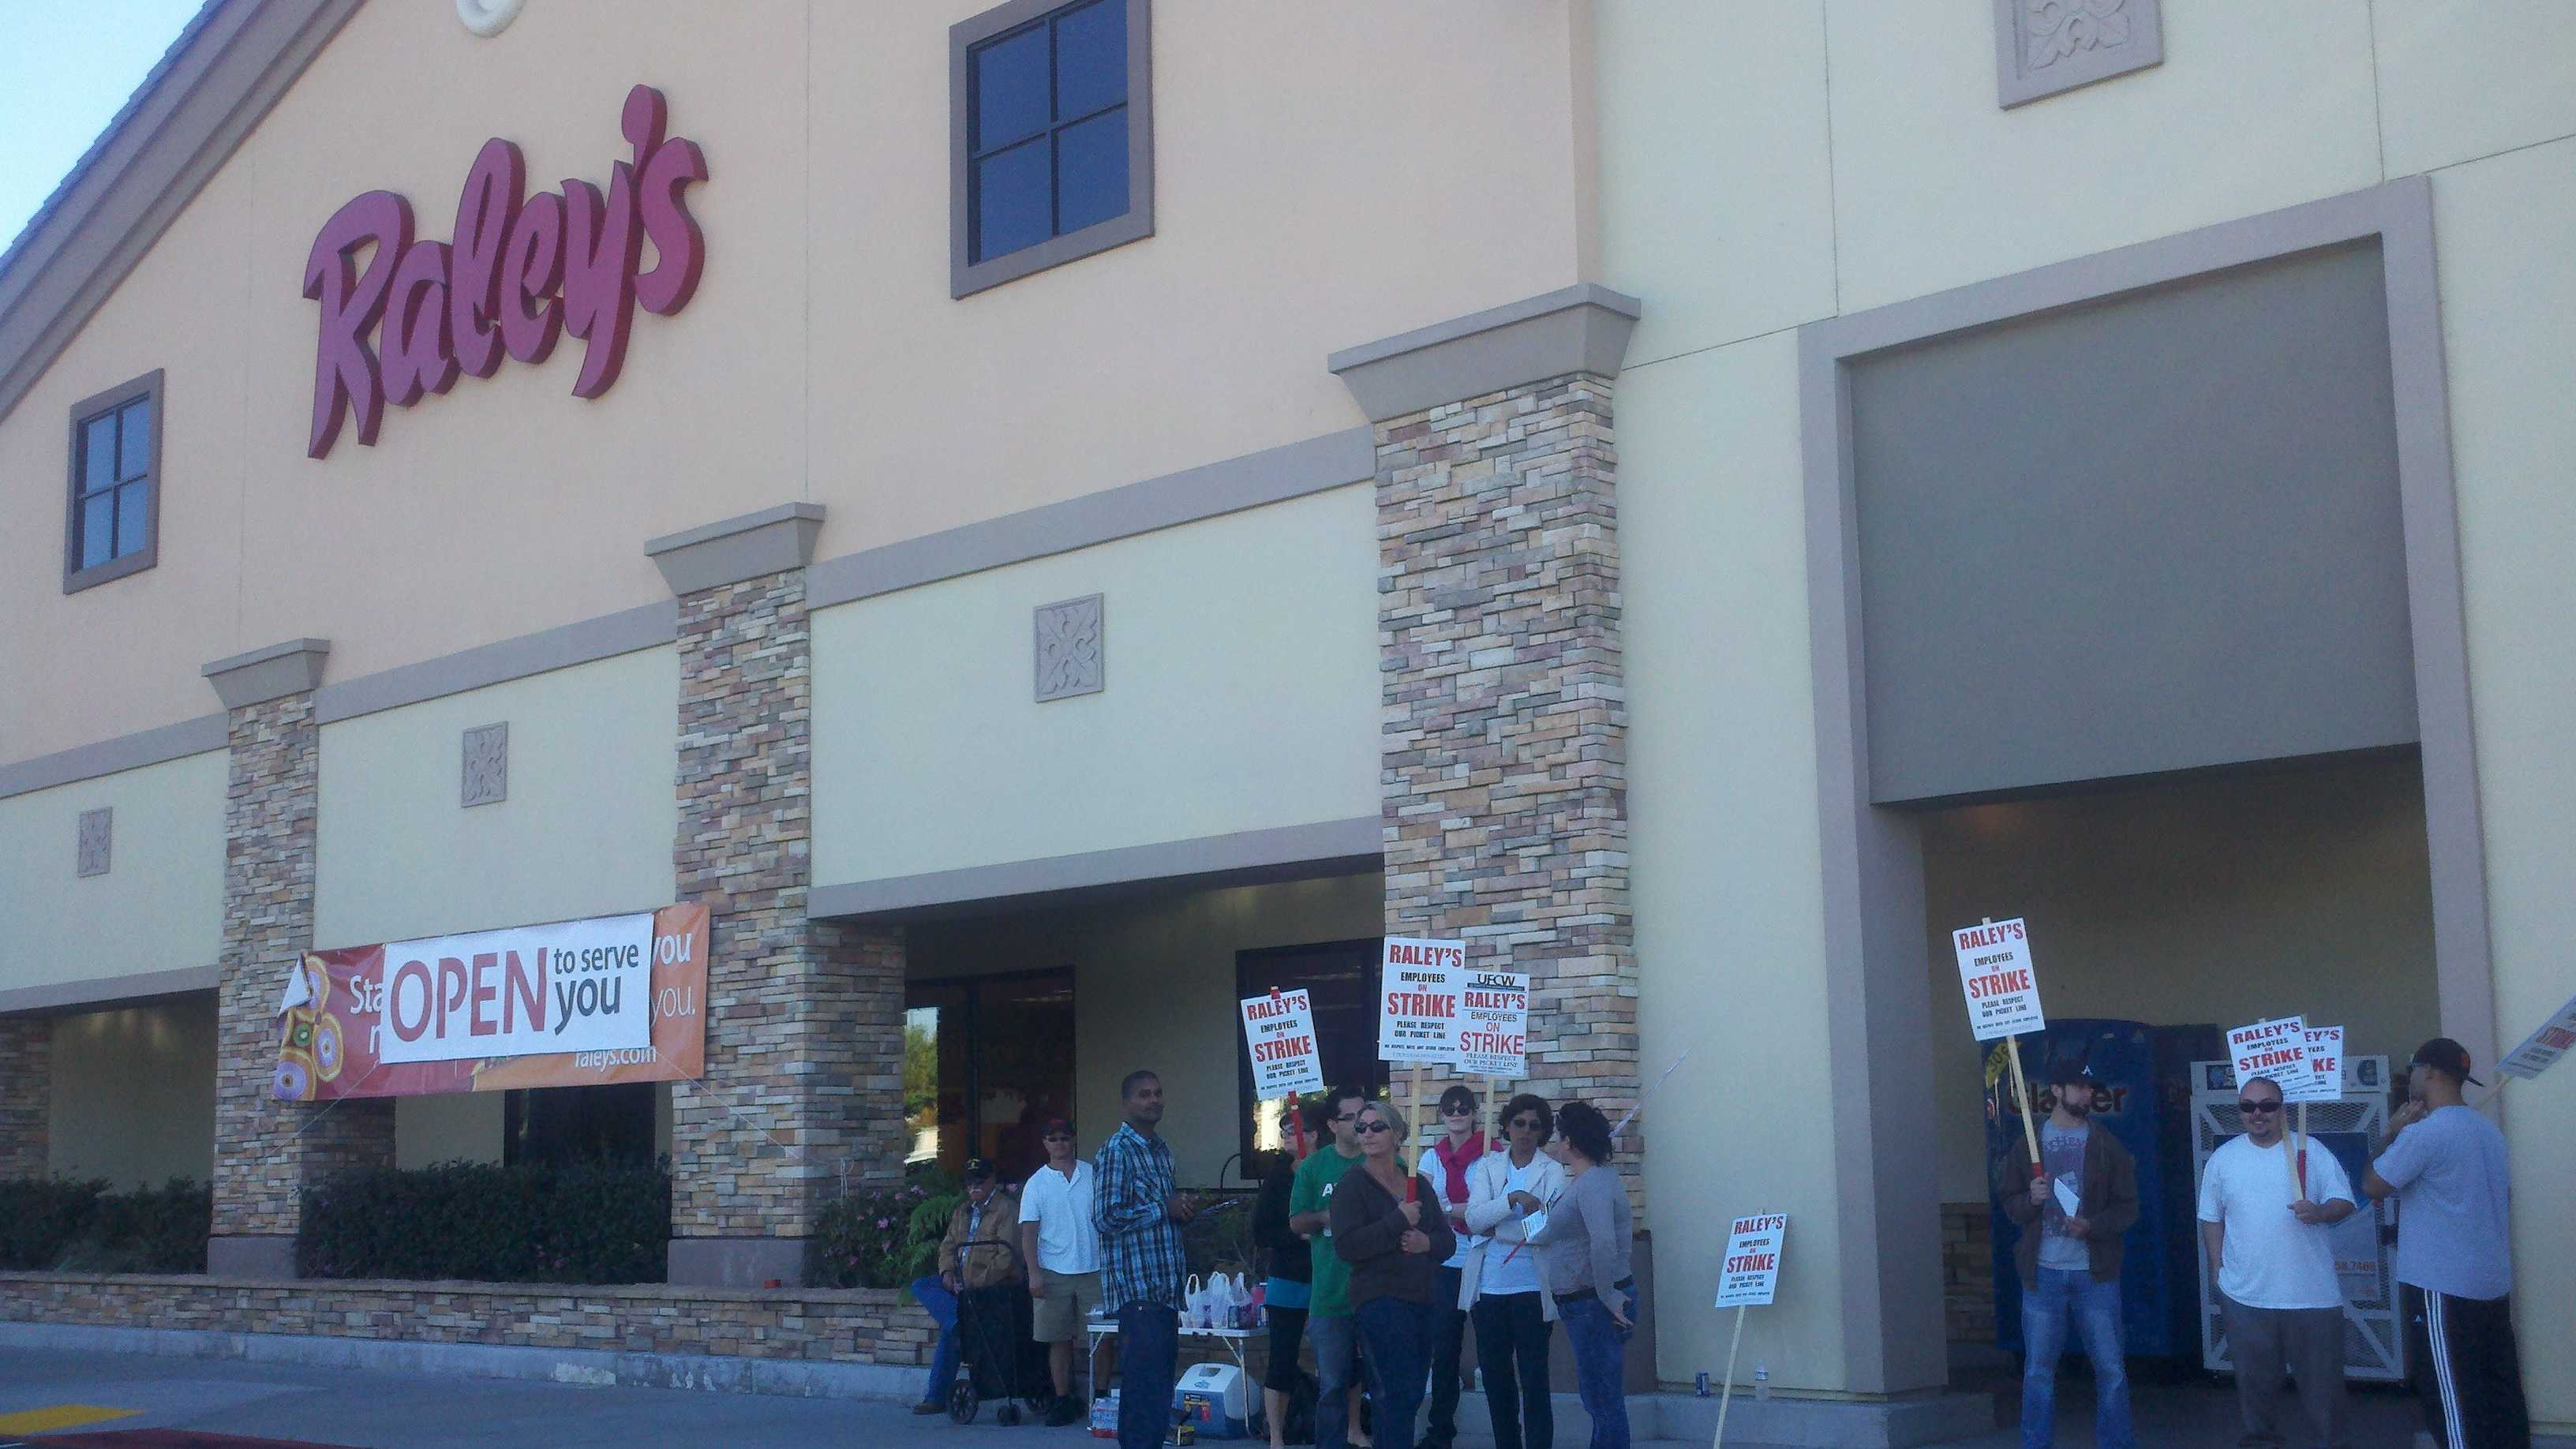 This Raley's store at 4900 Elk Grove blvd. is also a polling place for Tuesday's election.